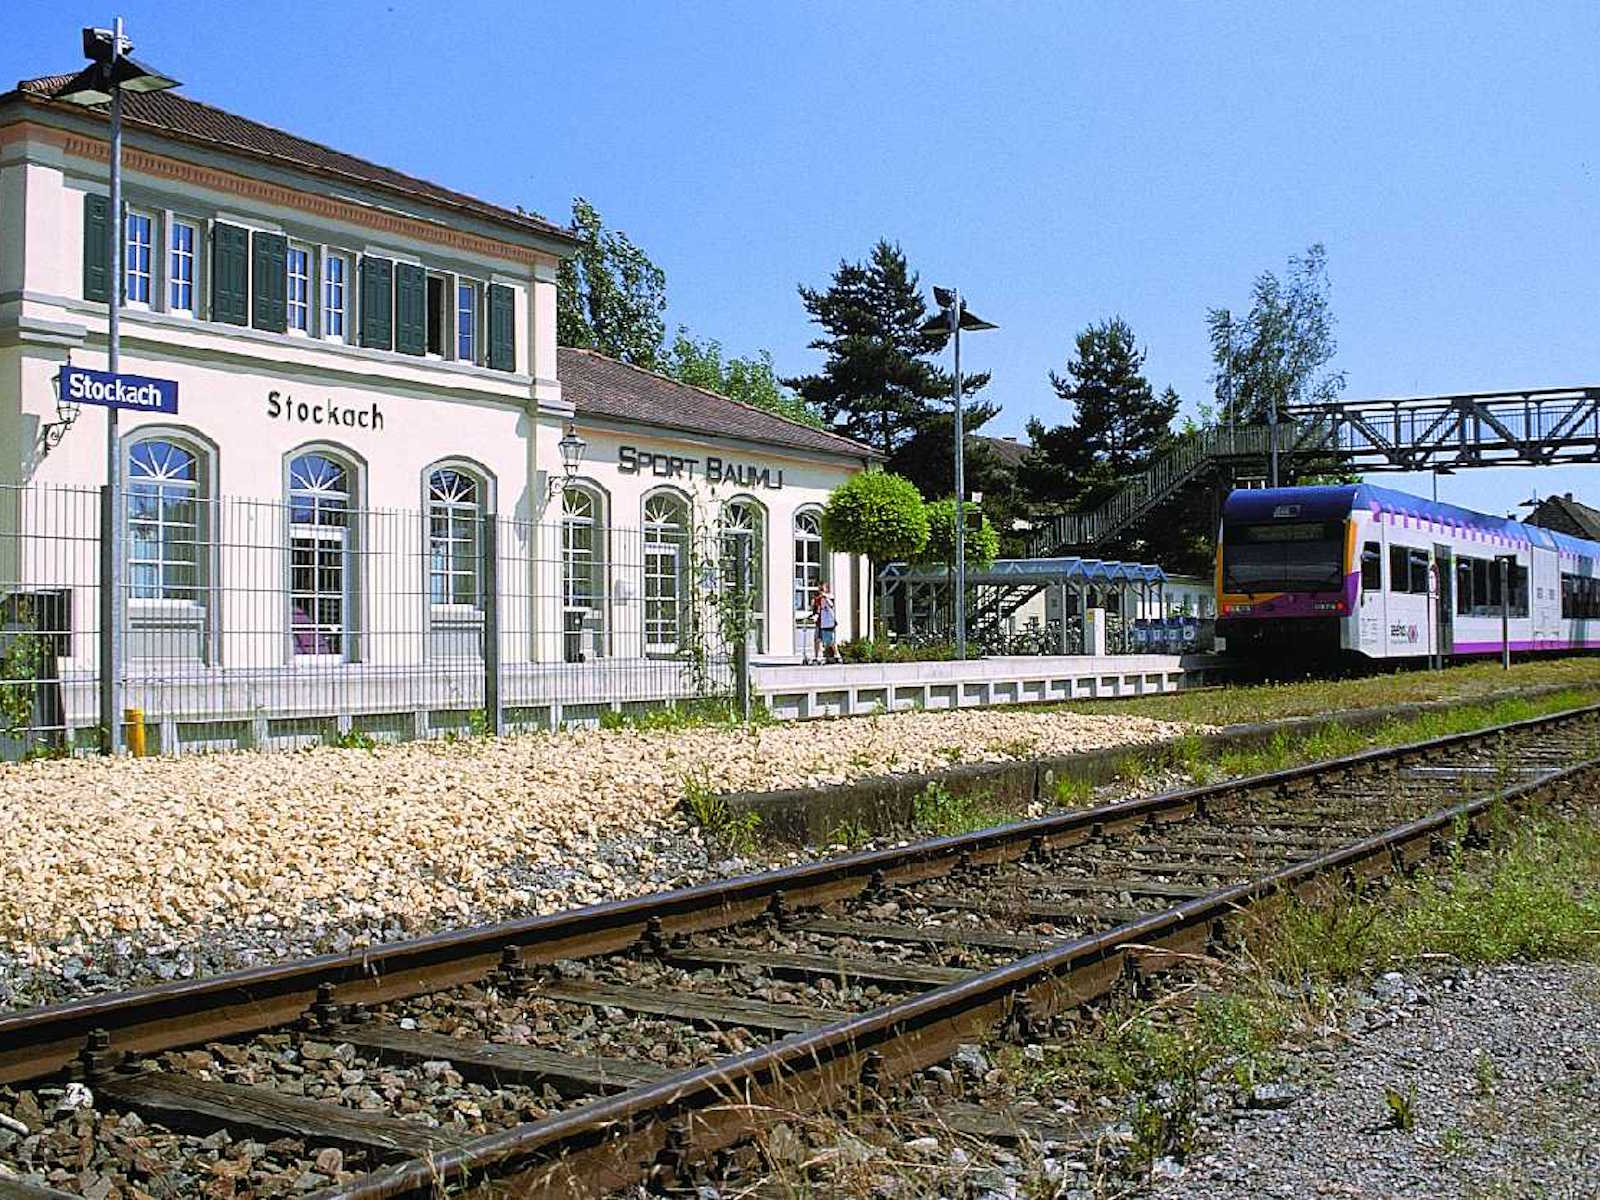 The station in Stockach